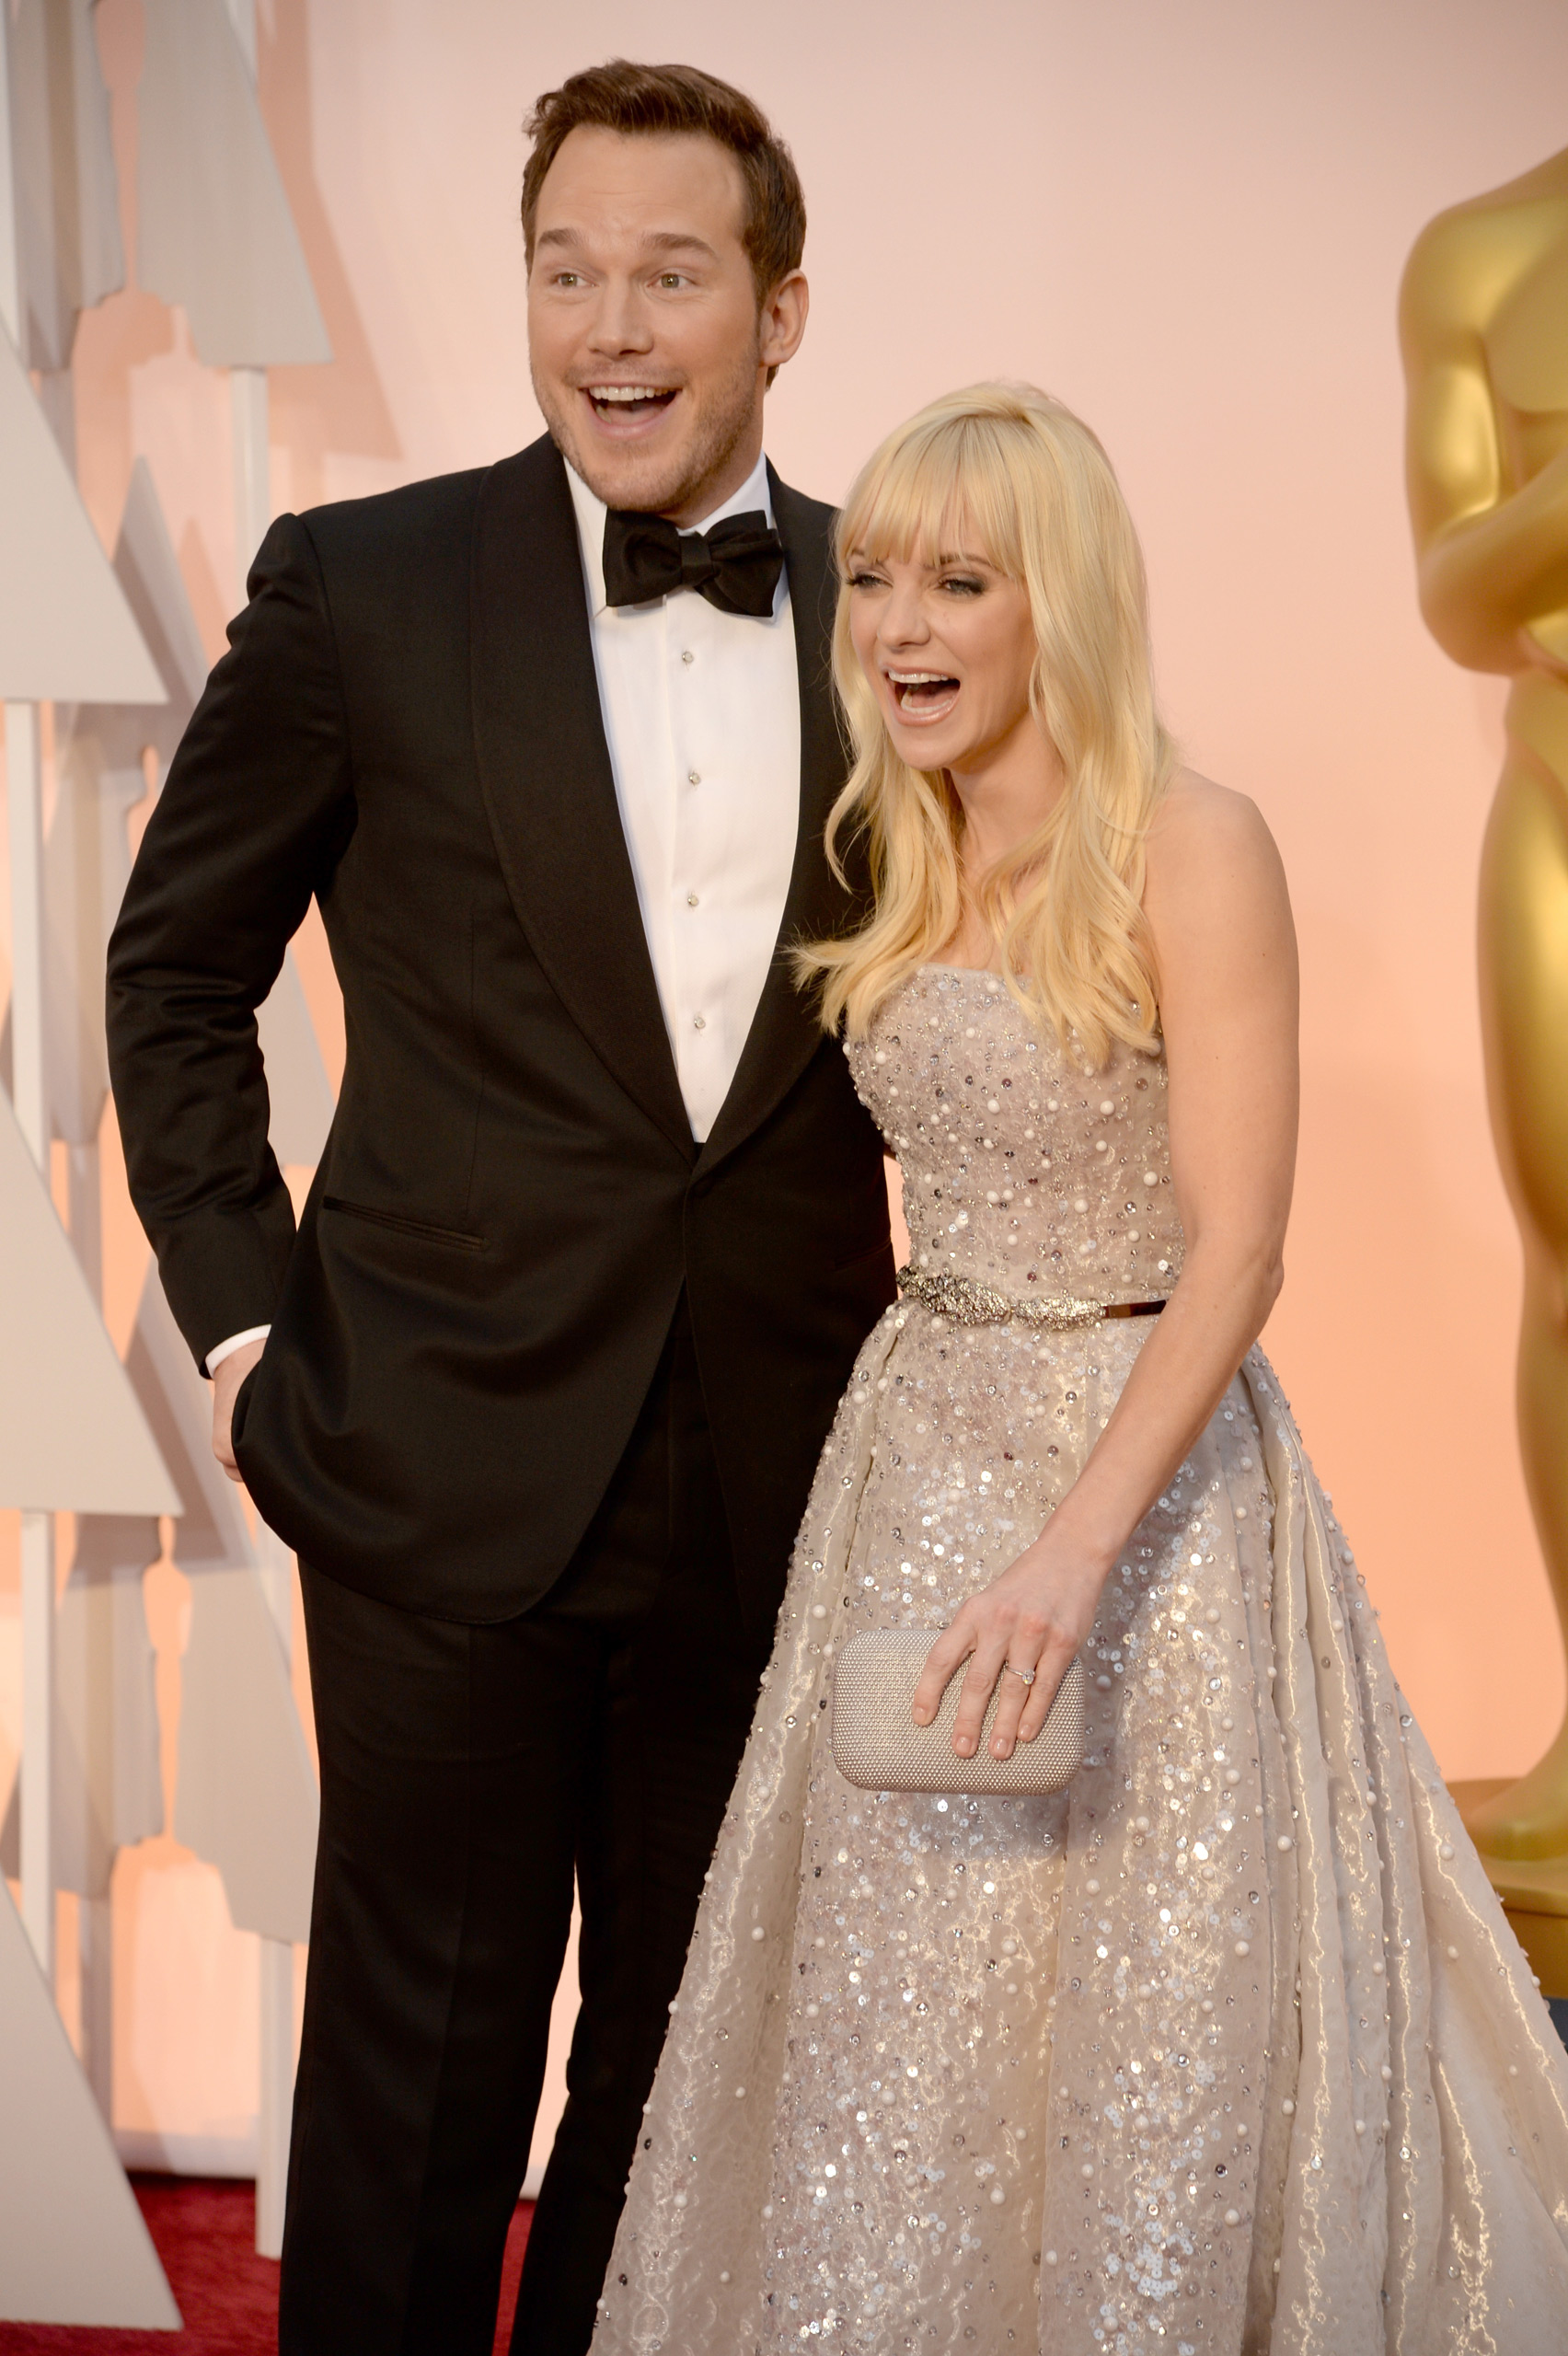 Chris Pratt and Anna Faris attend the 87th Annual Academy Awards on Feb. 22, 2015 in Hollywood, Calif.